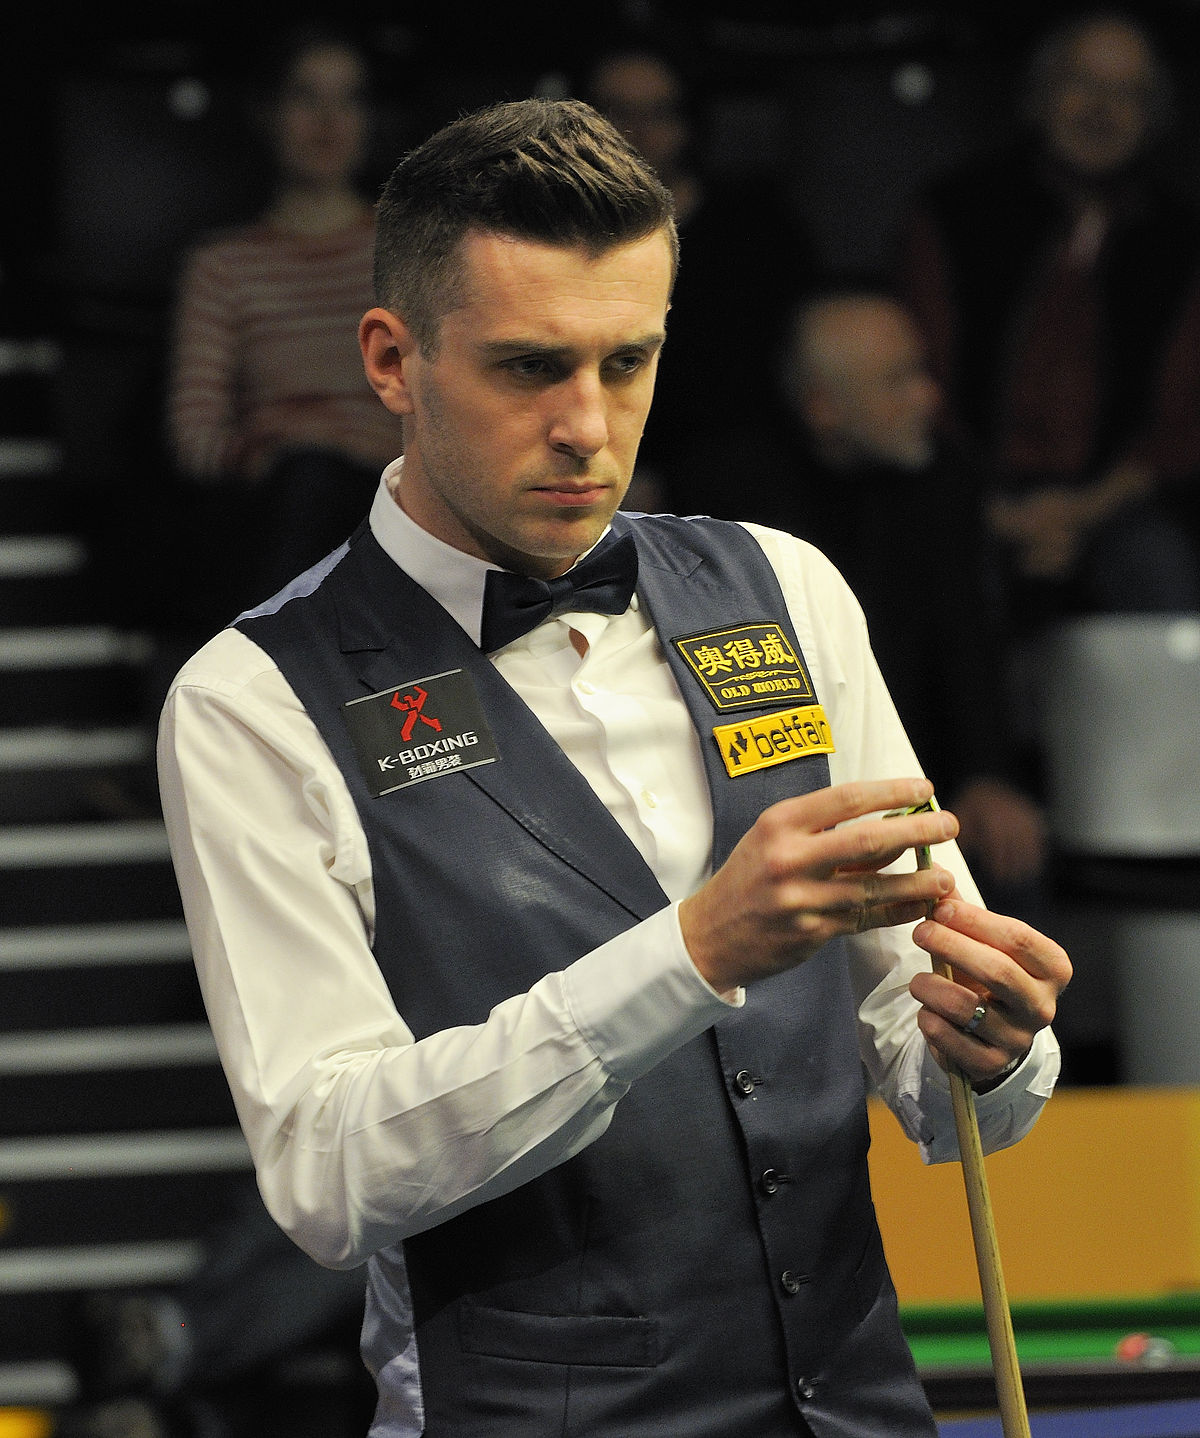 1200px-Mark_Selby_at_Snooker_German_Masters_(DerHexer)_2013-01-30_15